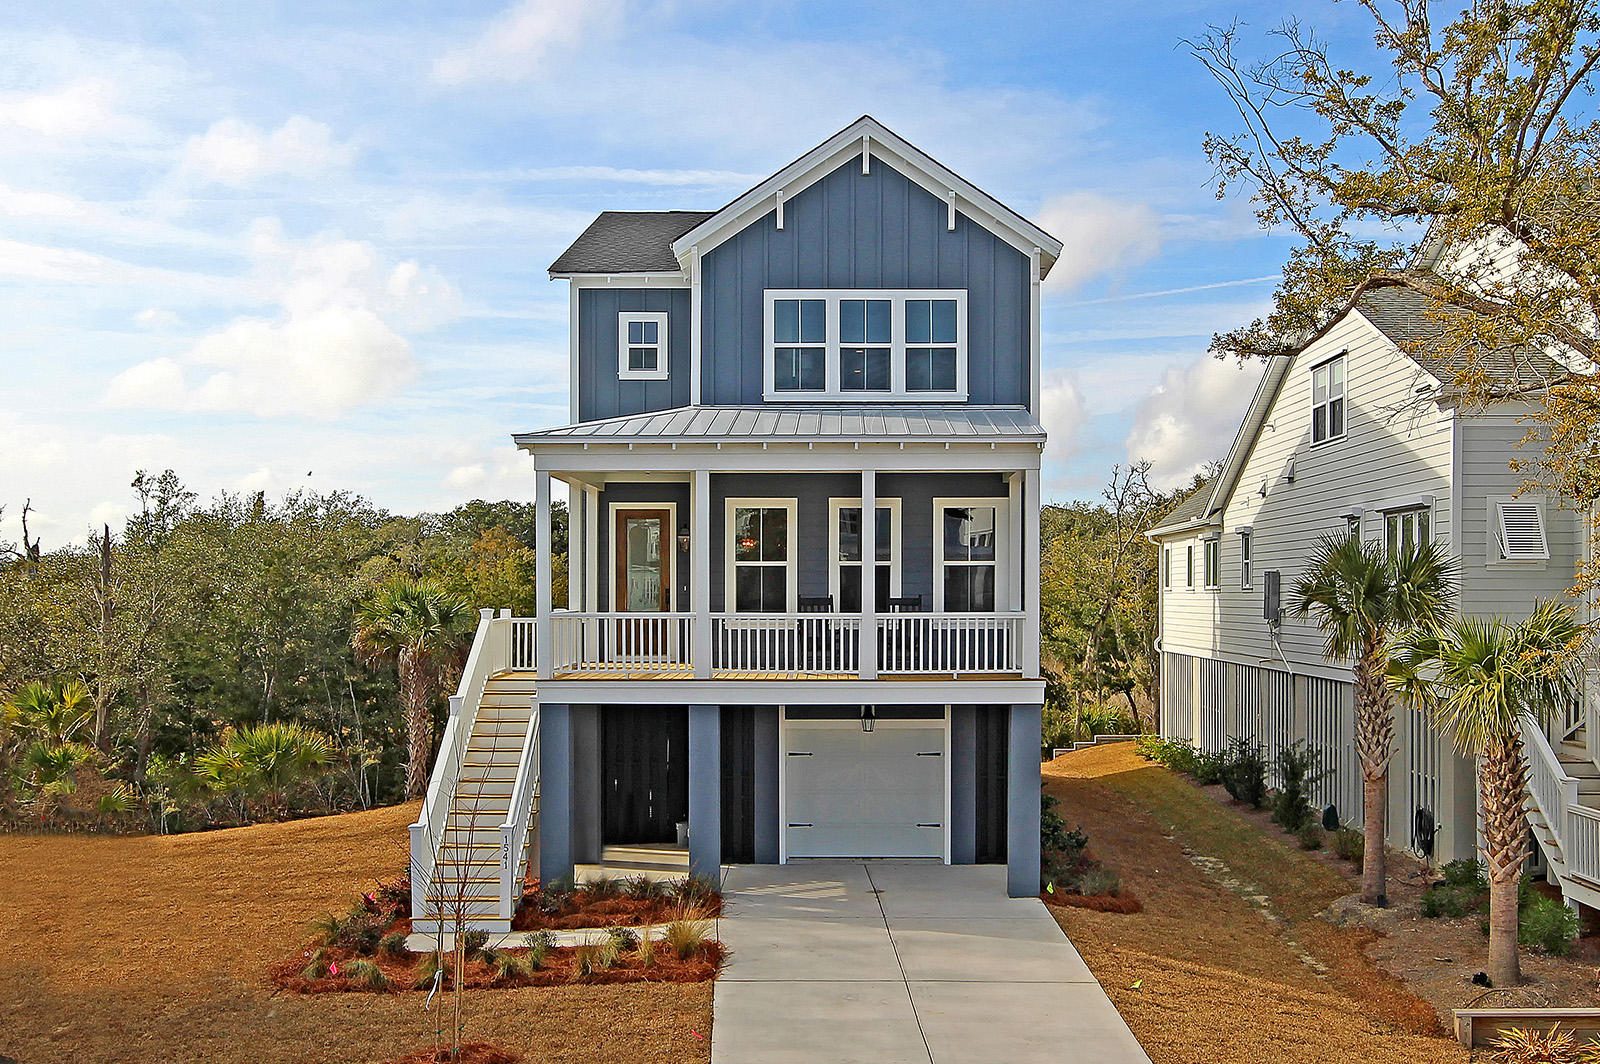 Stratton by the Sound Homes For Sale - 1541 Menhaden, Mount Pleasant, SC - 5